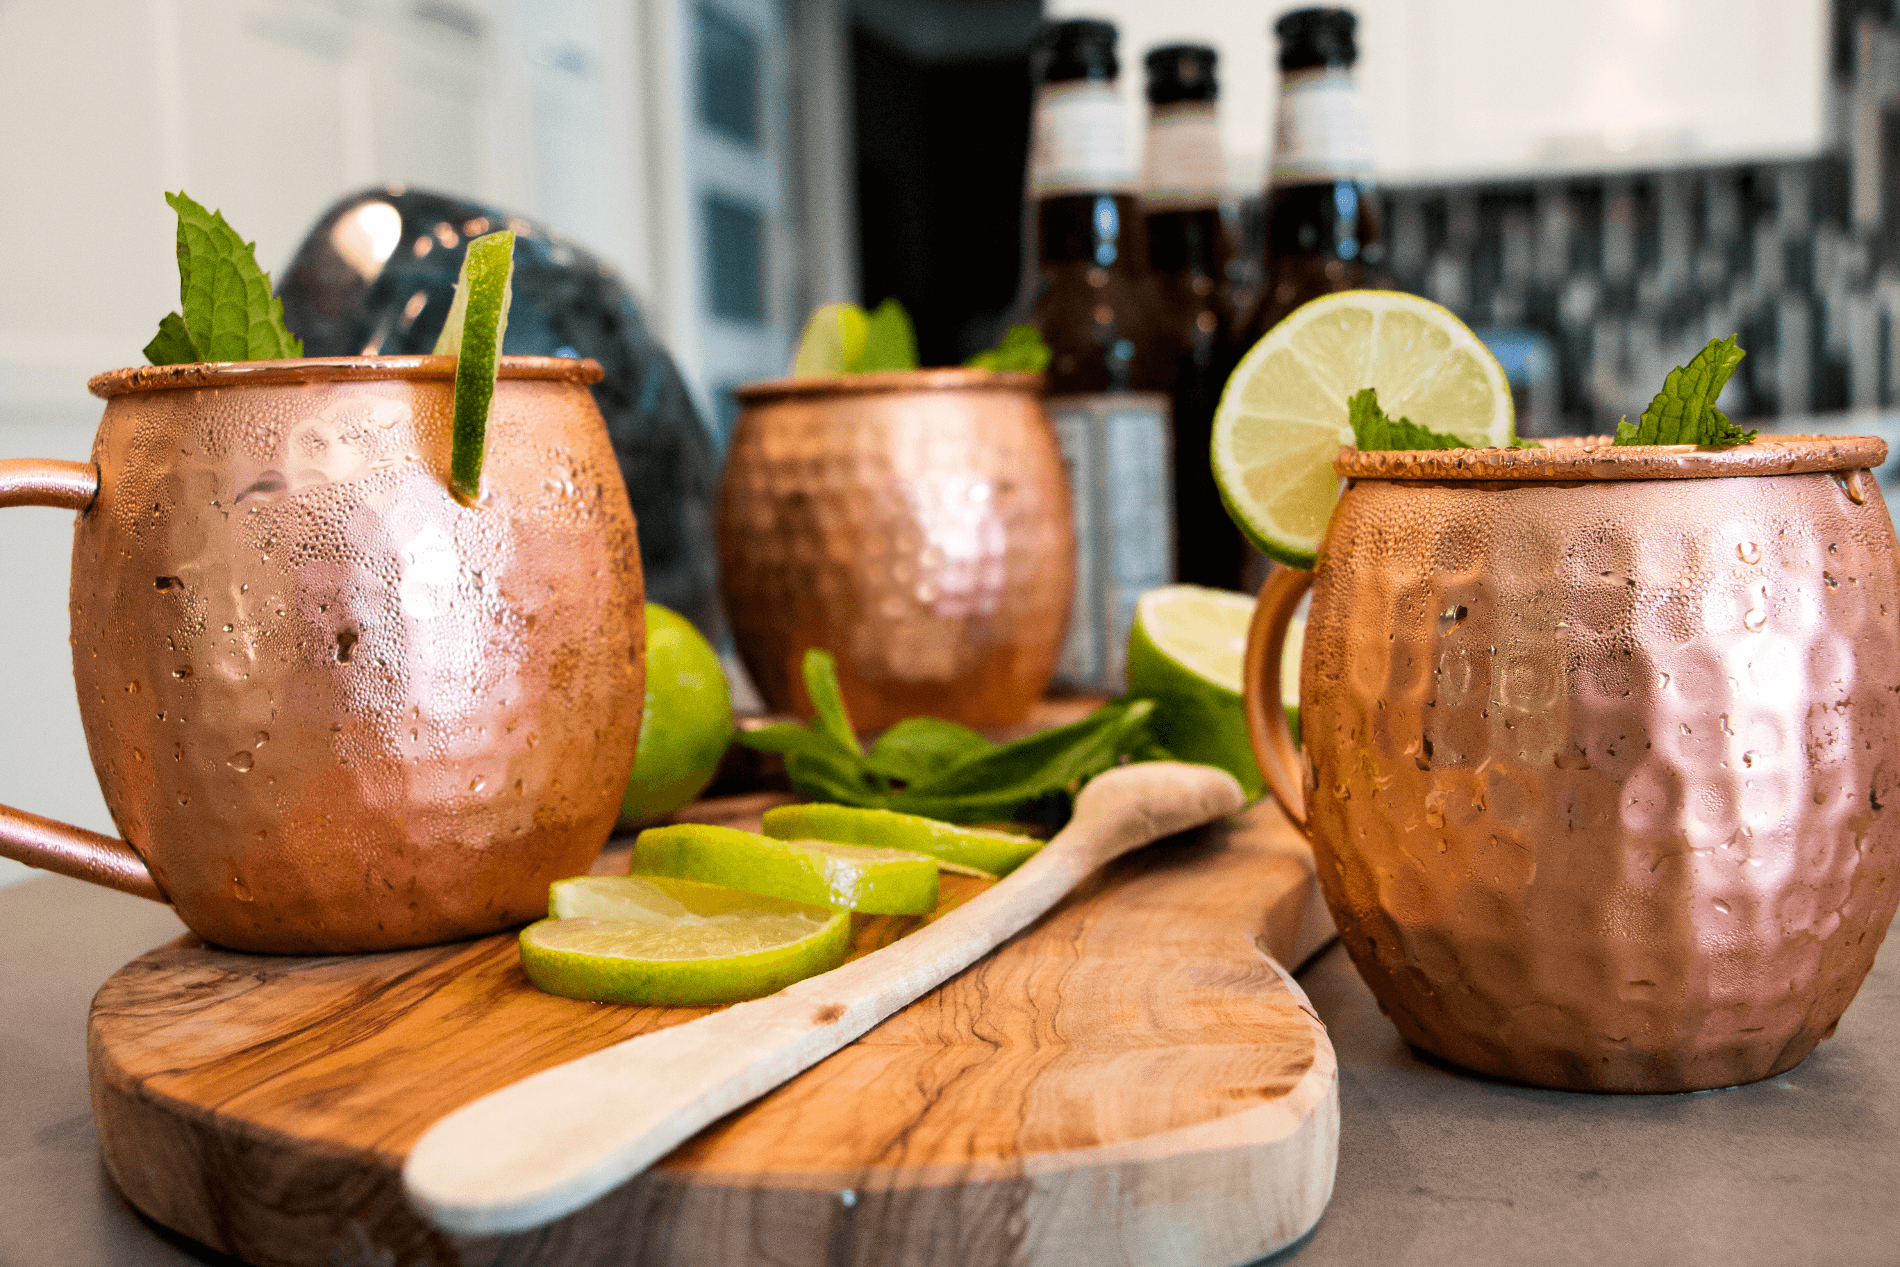 Preparation of Moscow Mule Cocktail With Urban Vintage LA Copper Mugs On Cutting Board With Limes And Mint